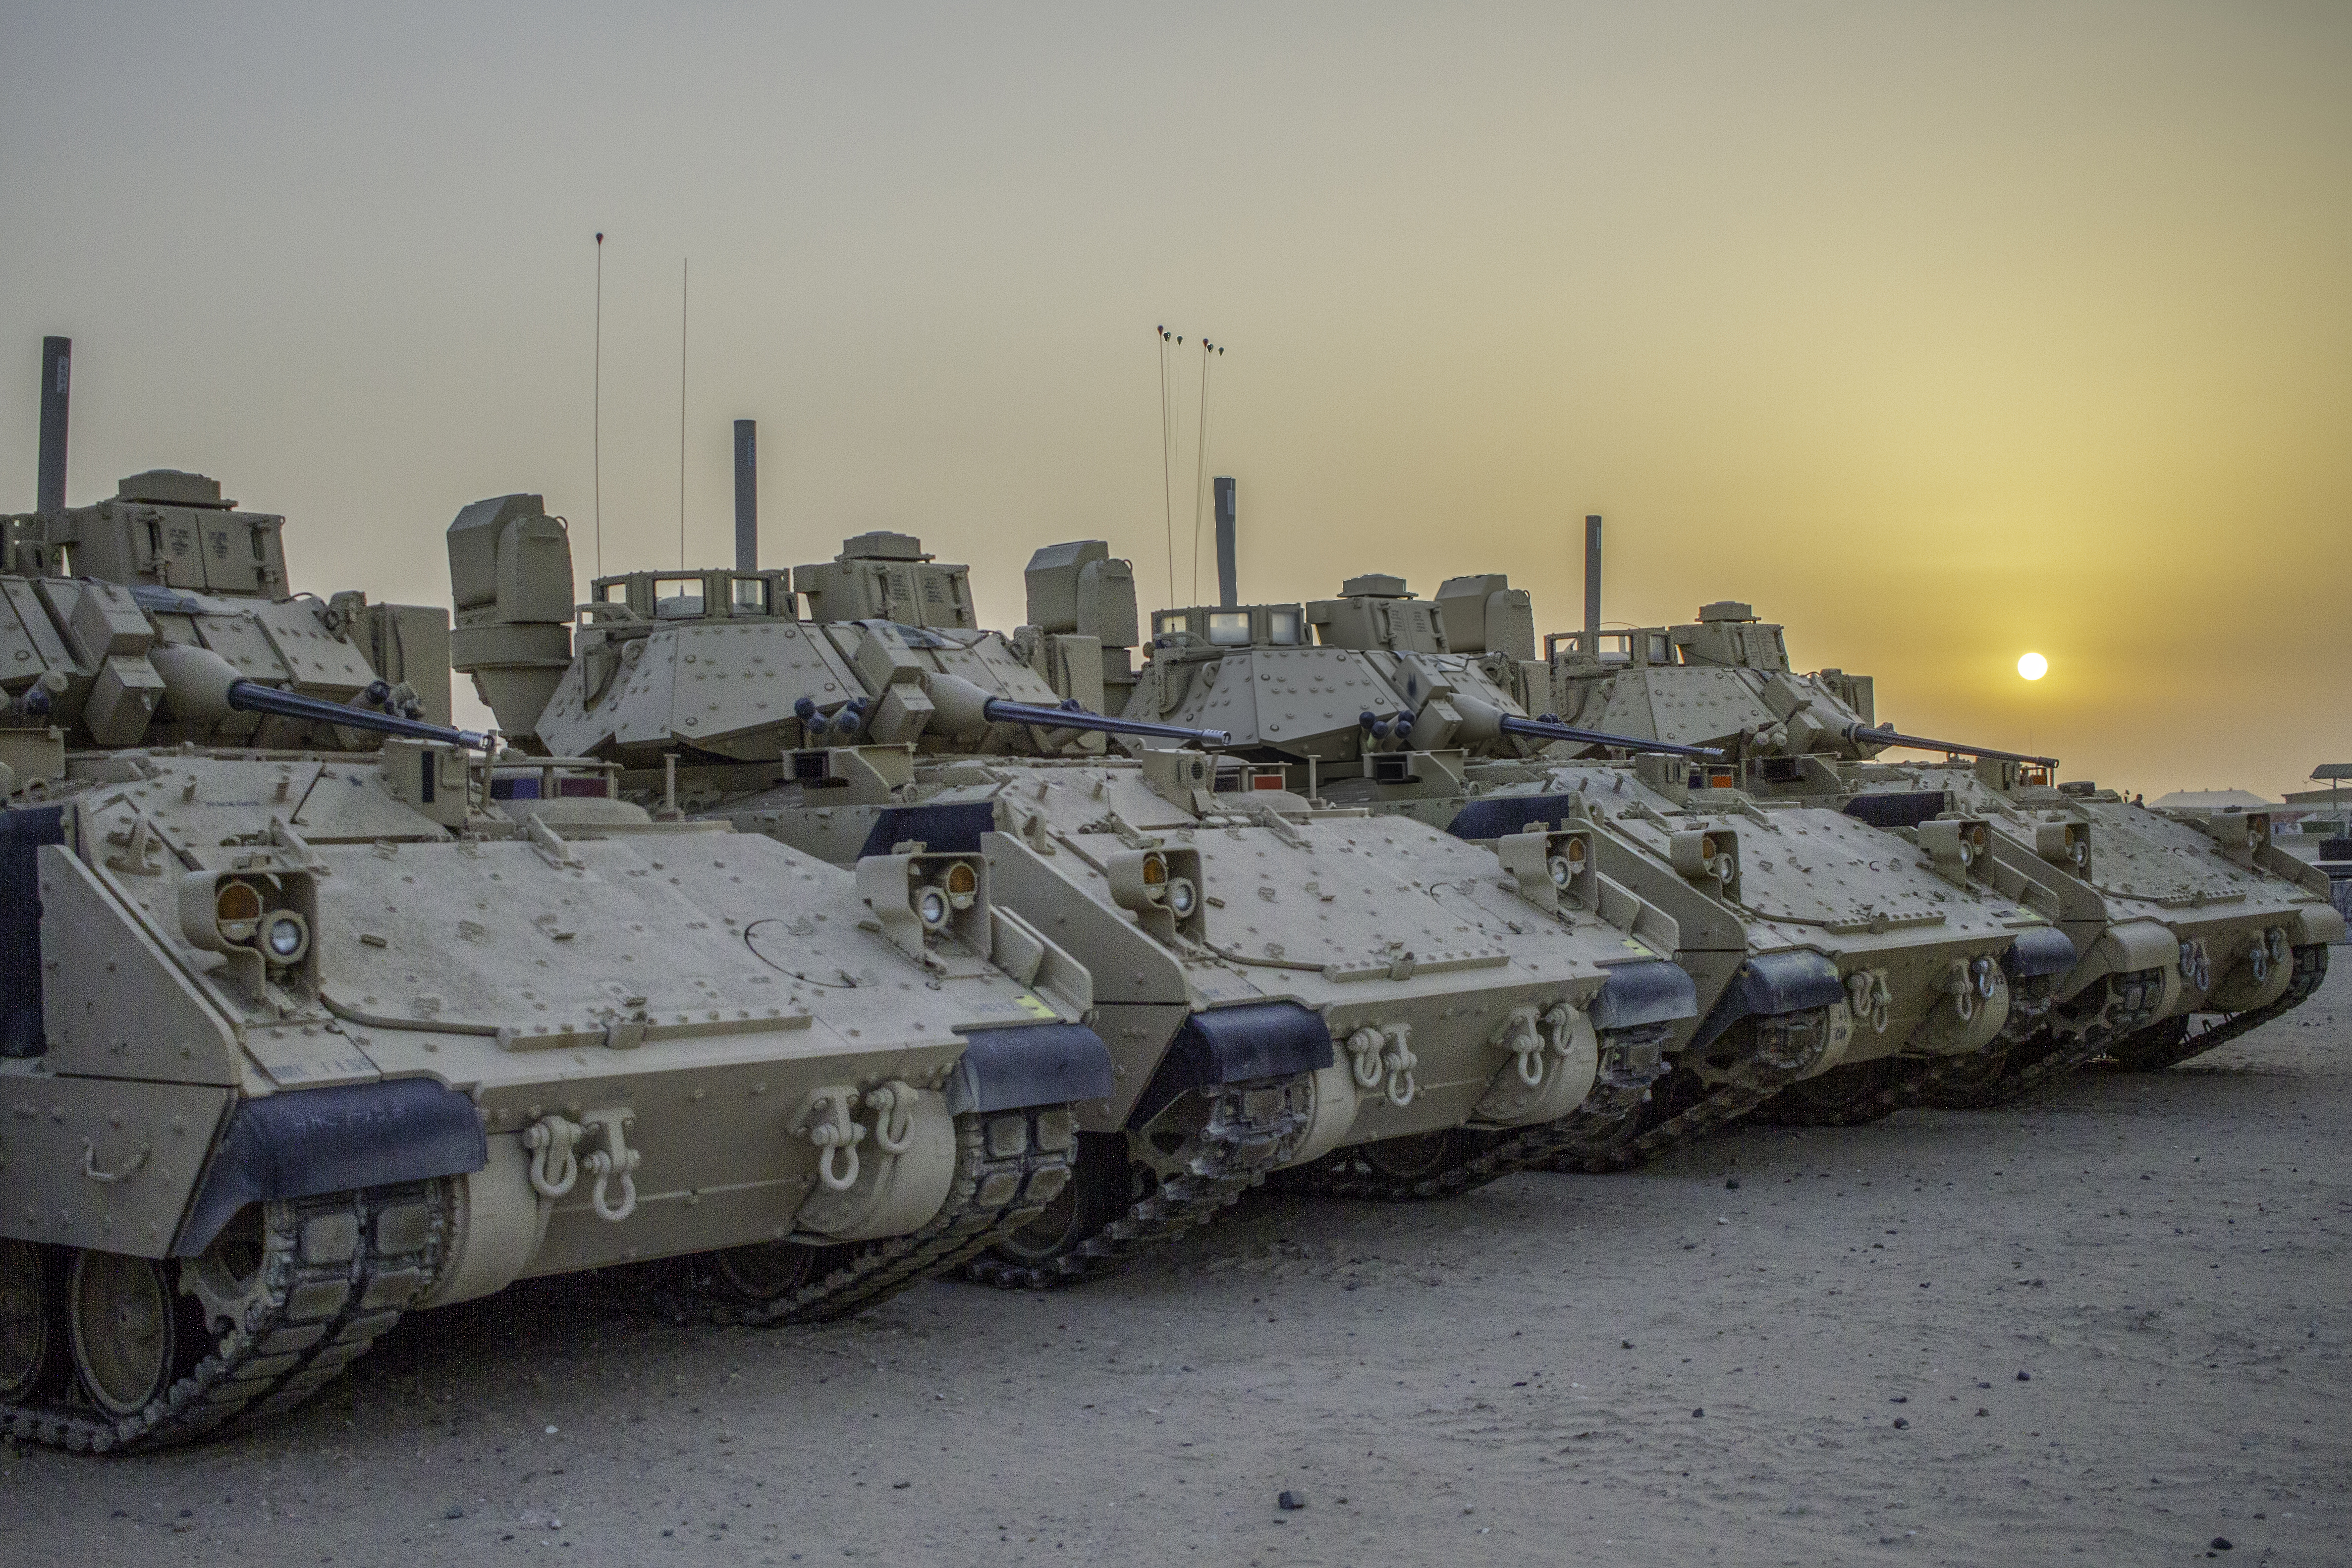 Four M2A3 Bradley Infantry Fighting Vehicles are illuminated in 2018 by the rising sun in a motor pool located at Camp Buehring, Kuwait. (Spc. Jovi Prevot/U.S. Army National Guard photo illustration)